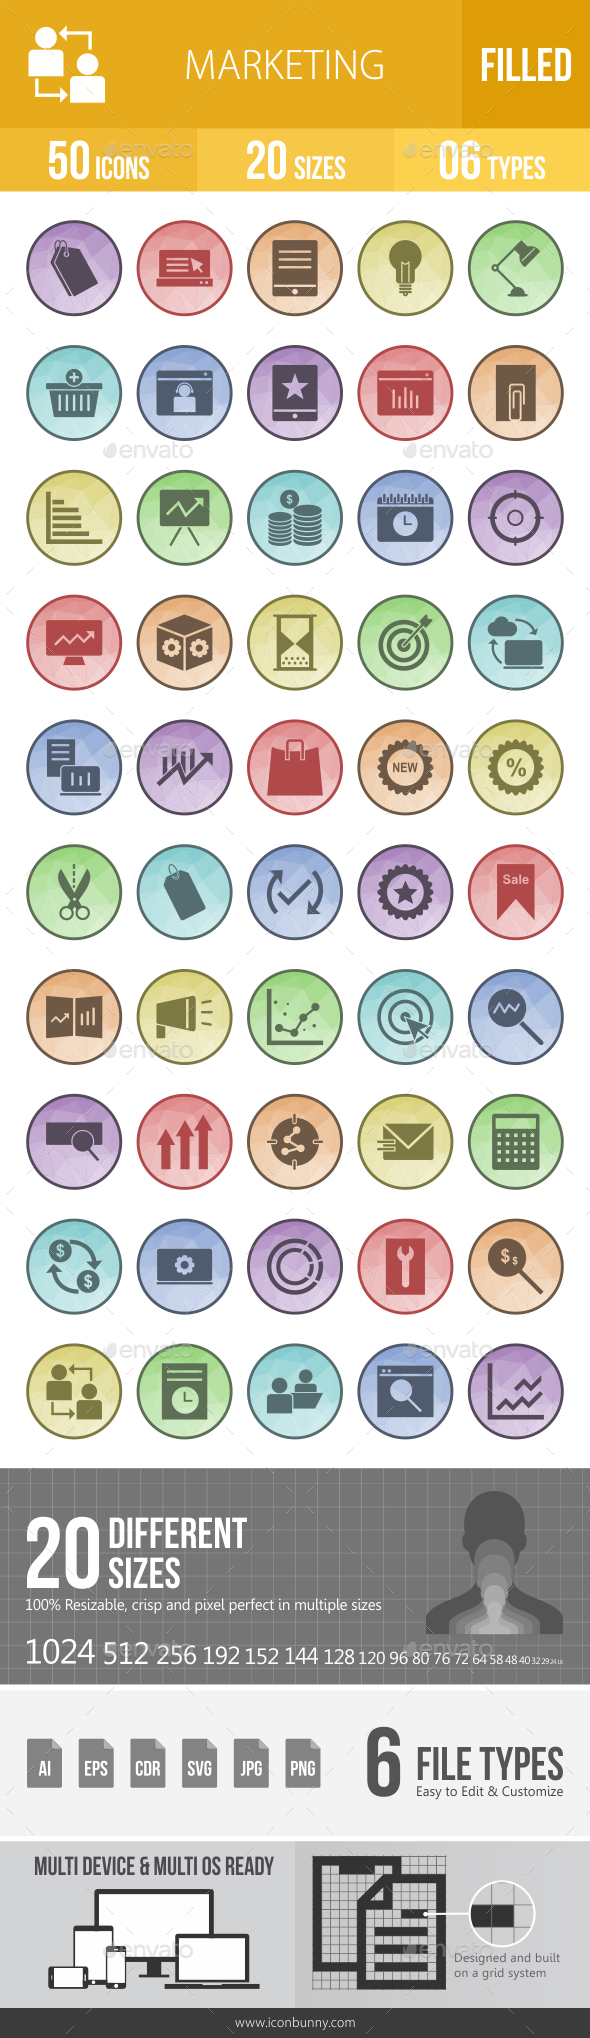 50 Marketing Filled Low Poly Icons - Icons